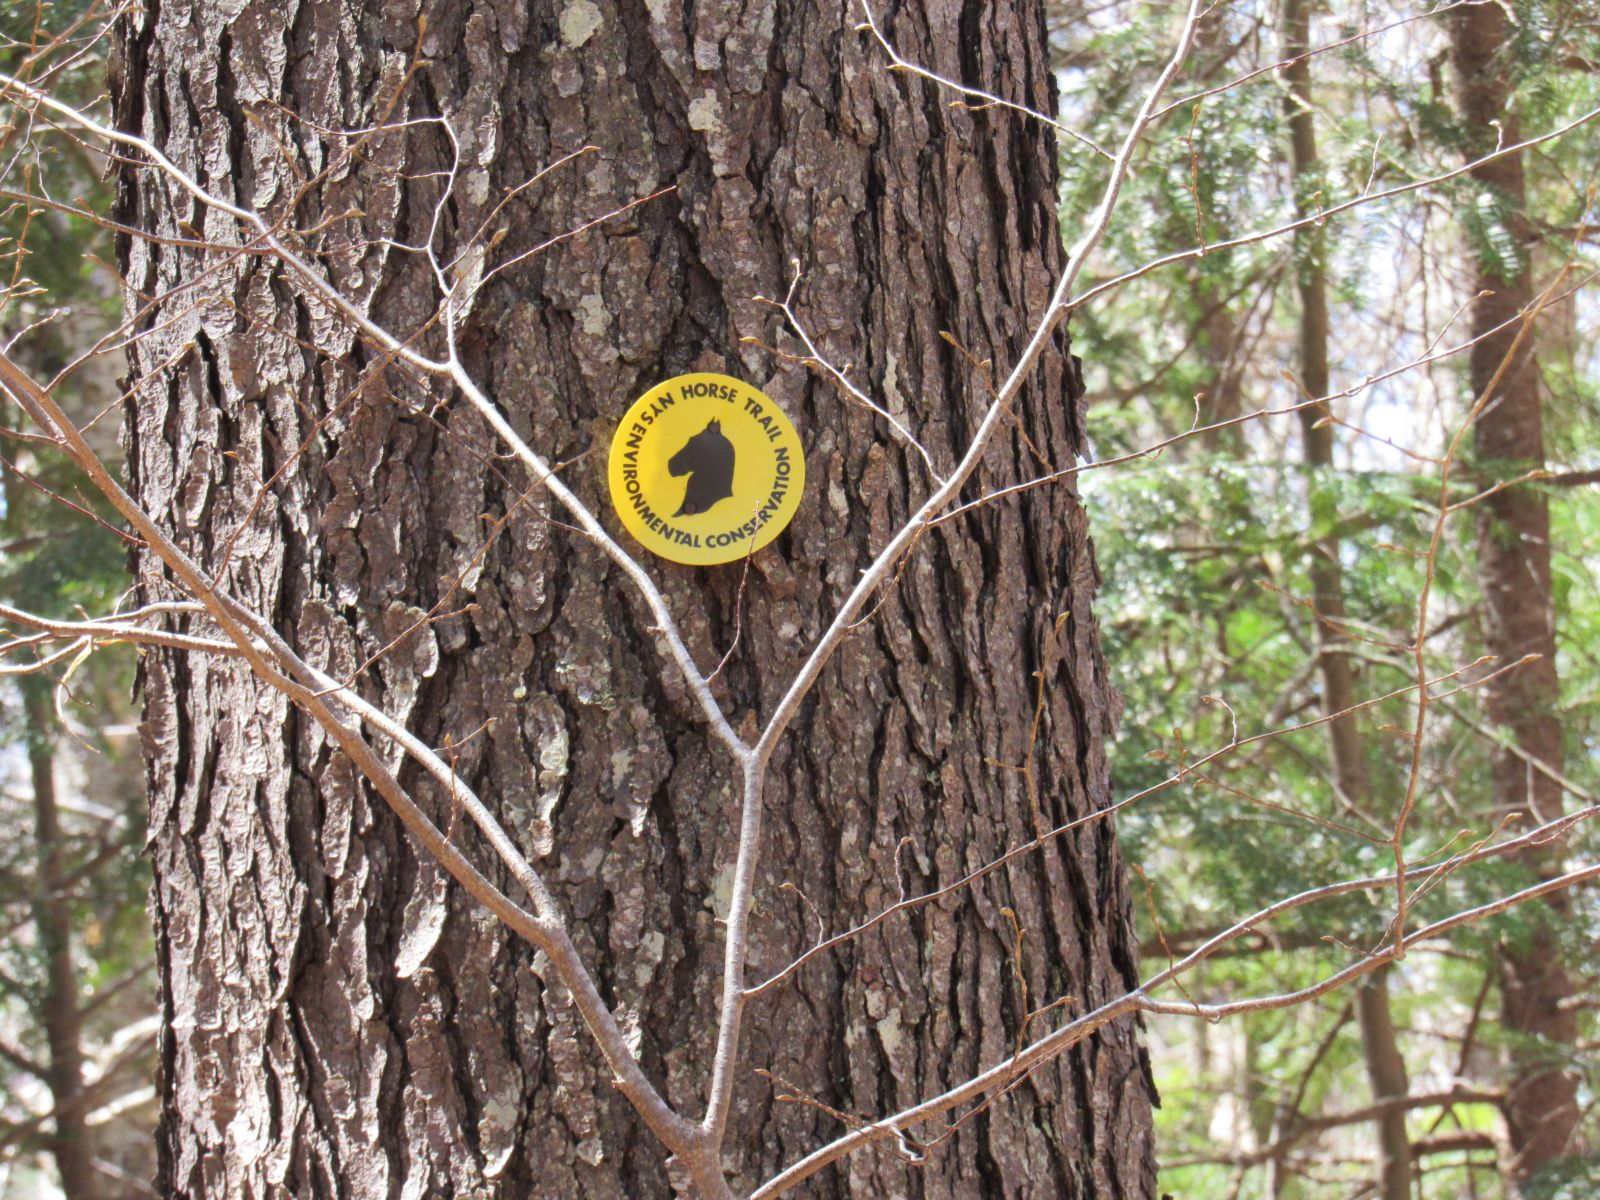 The trail markers